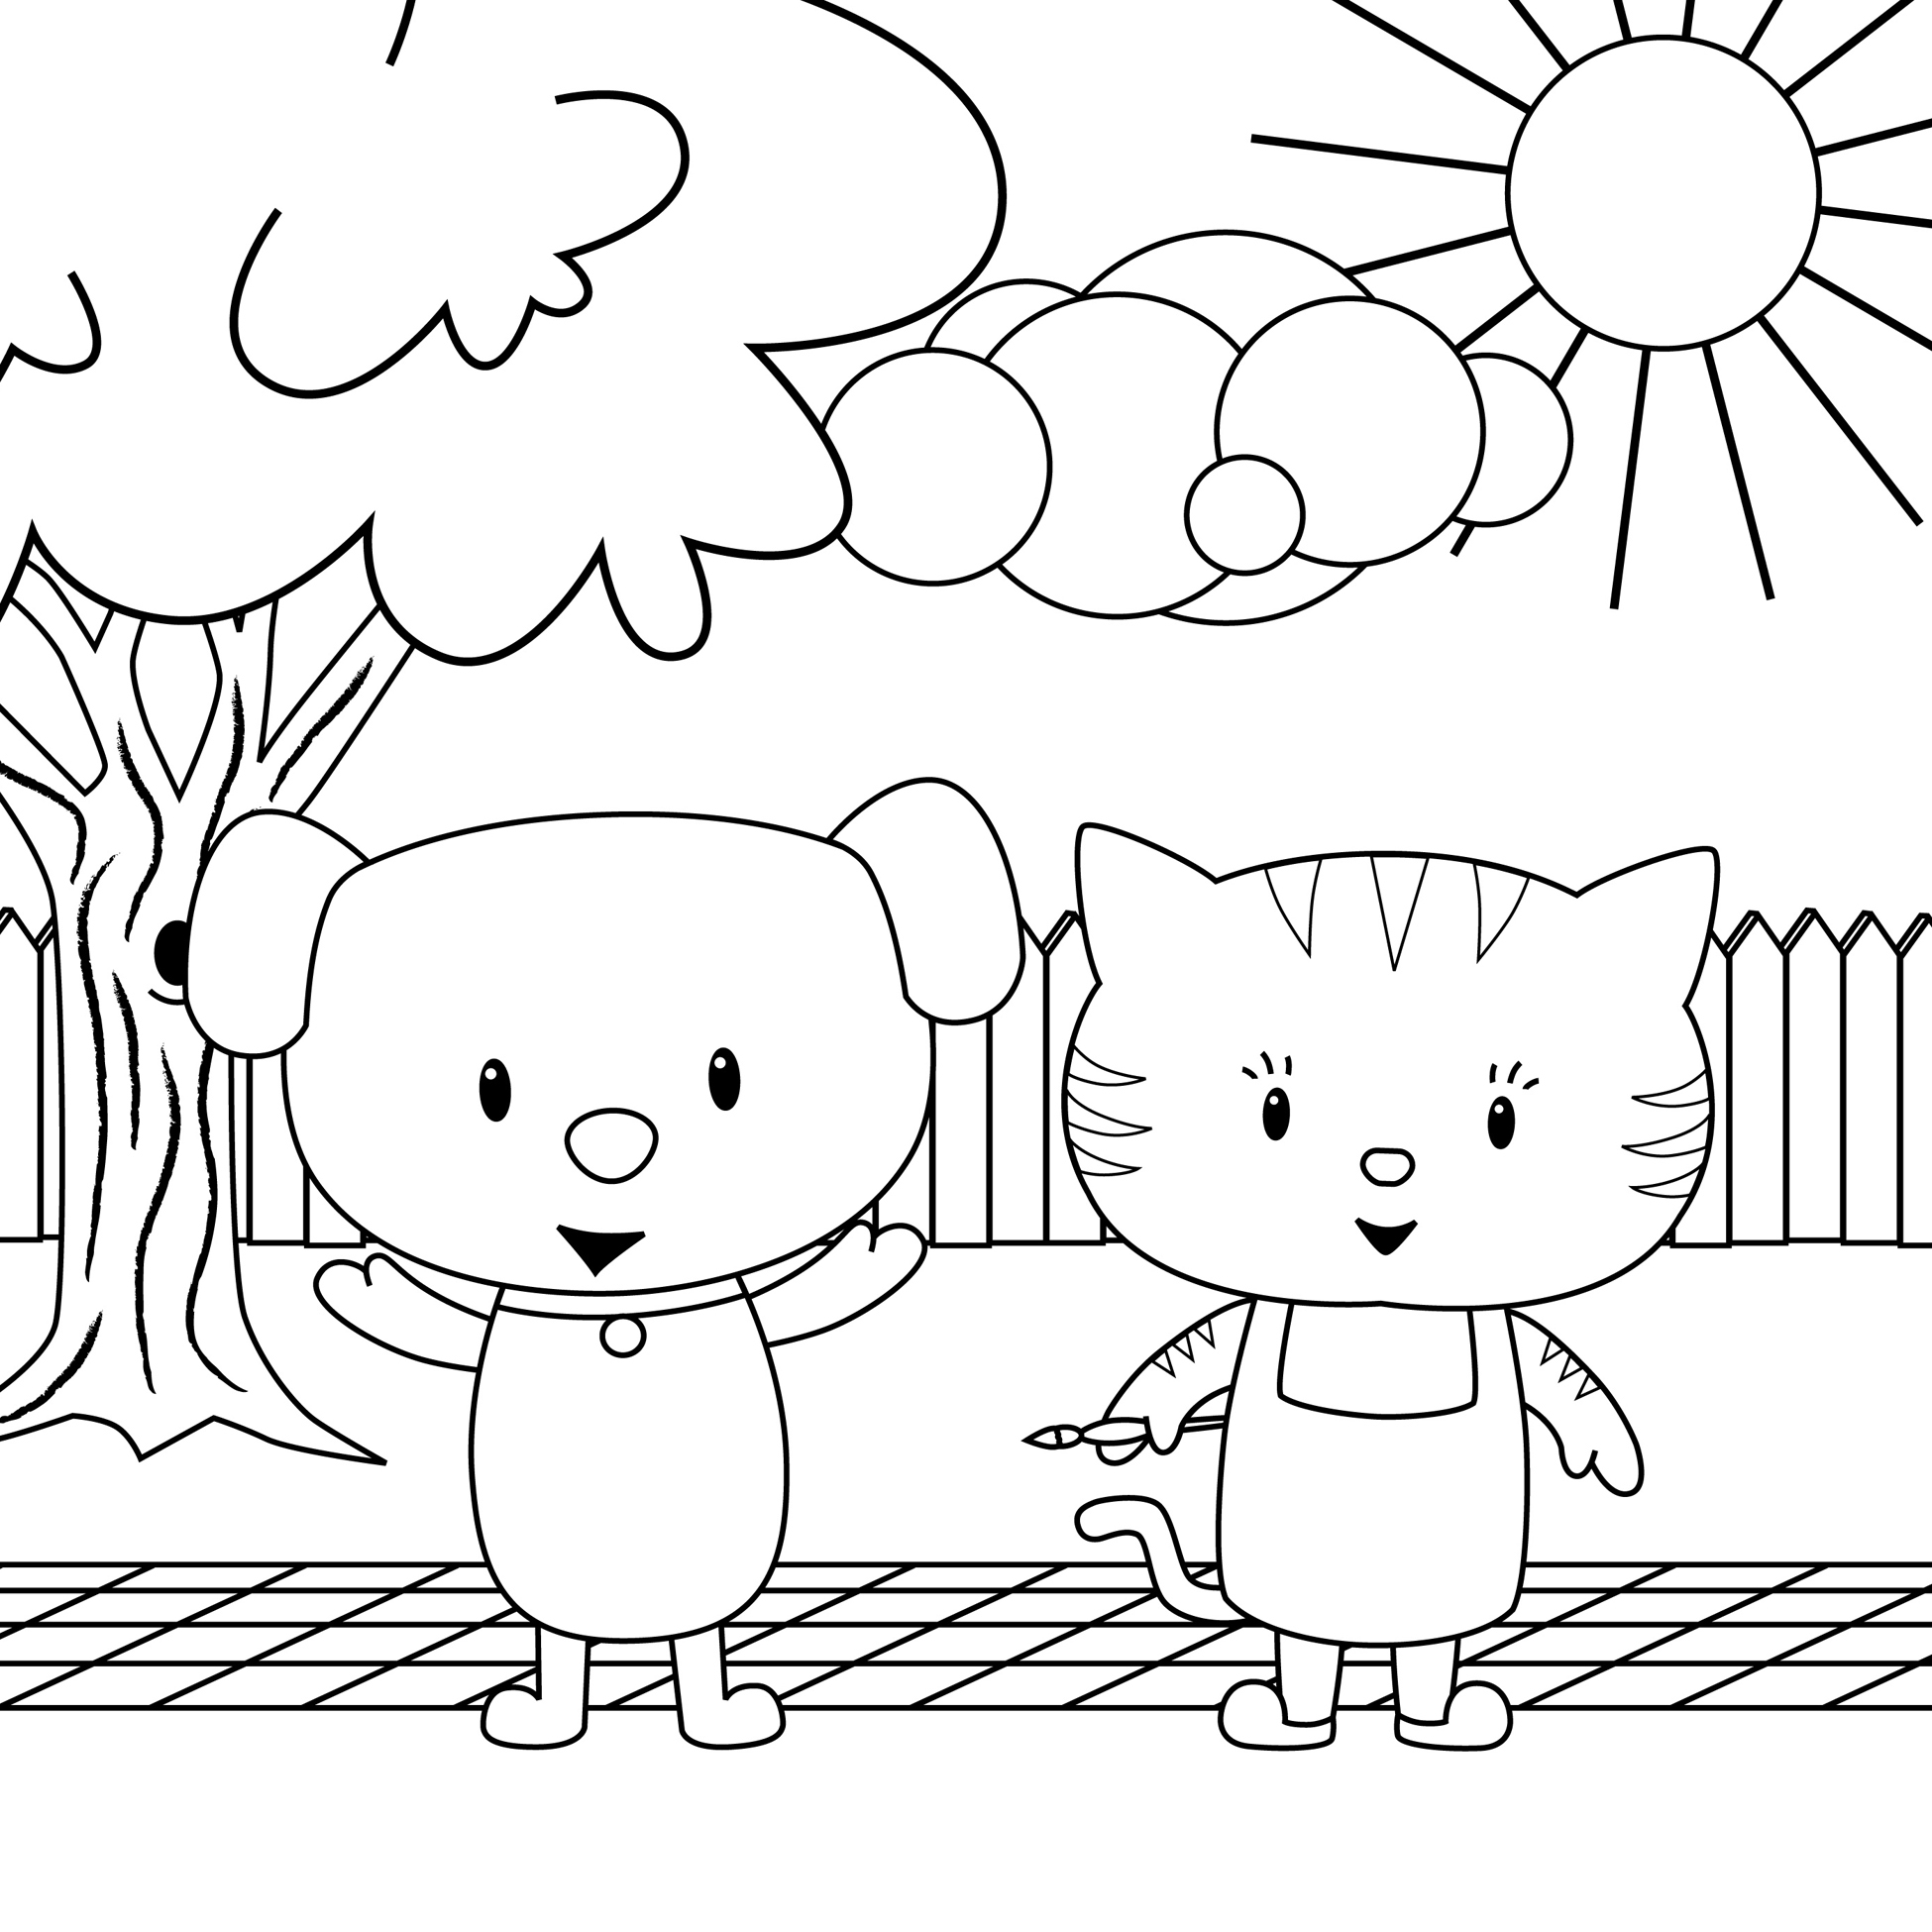 Coloring Sheets Of Dogs And Cats : Cats And Dogs Colouring Sheets Murderthestout